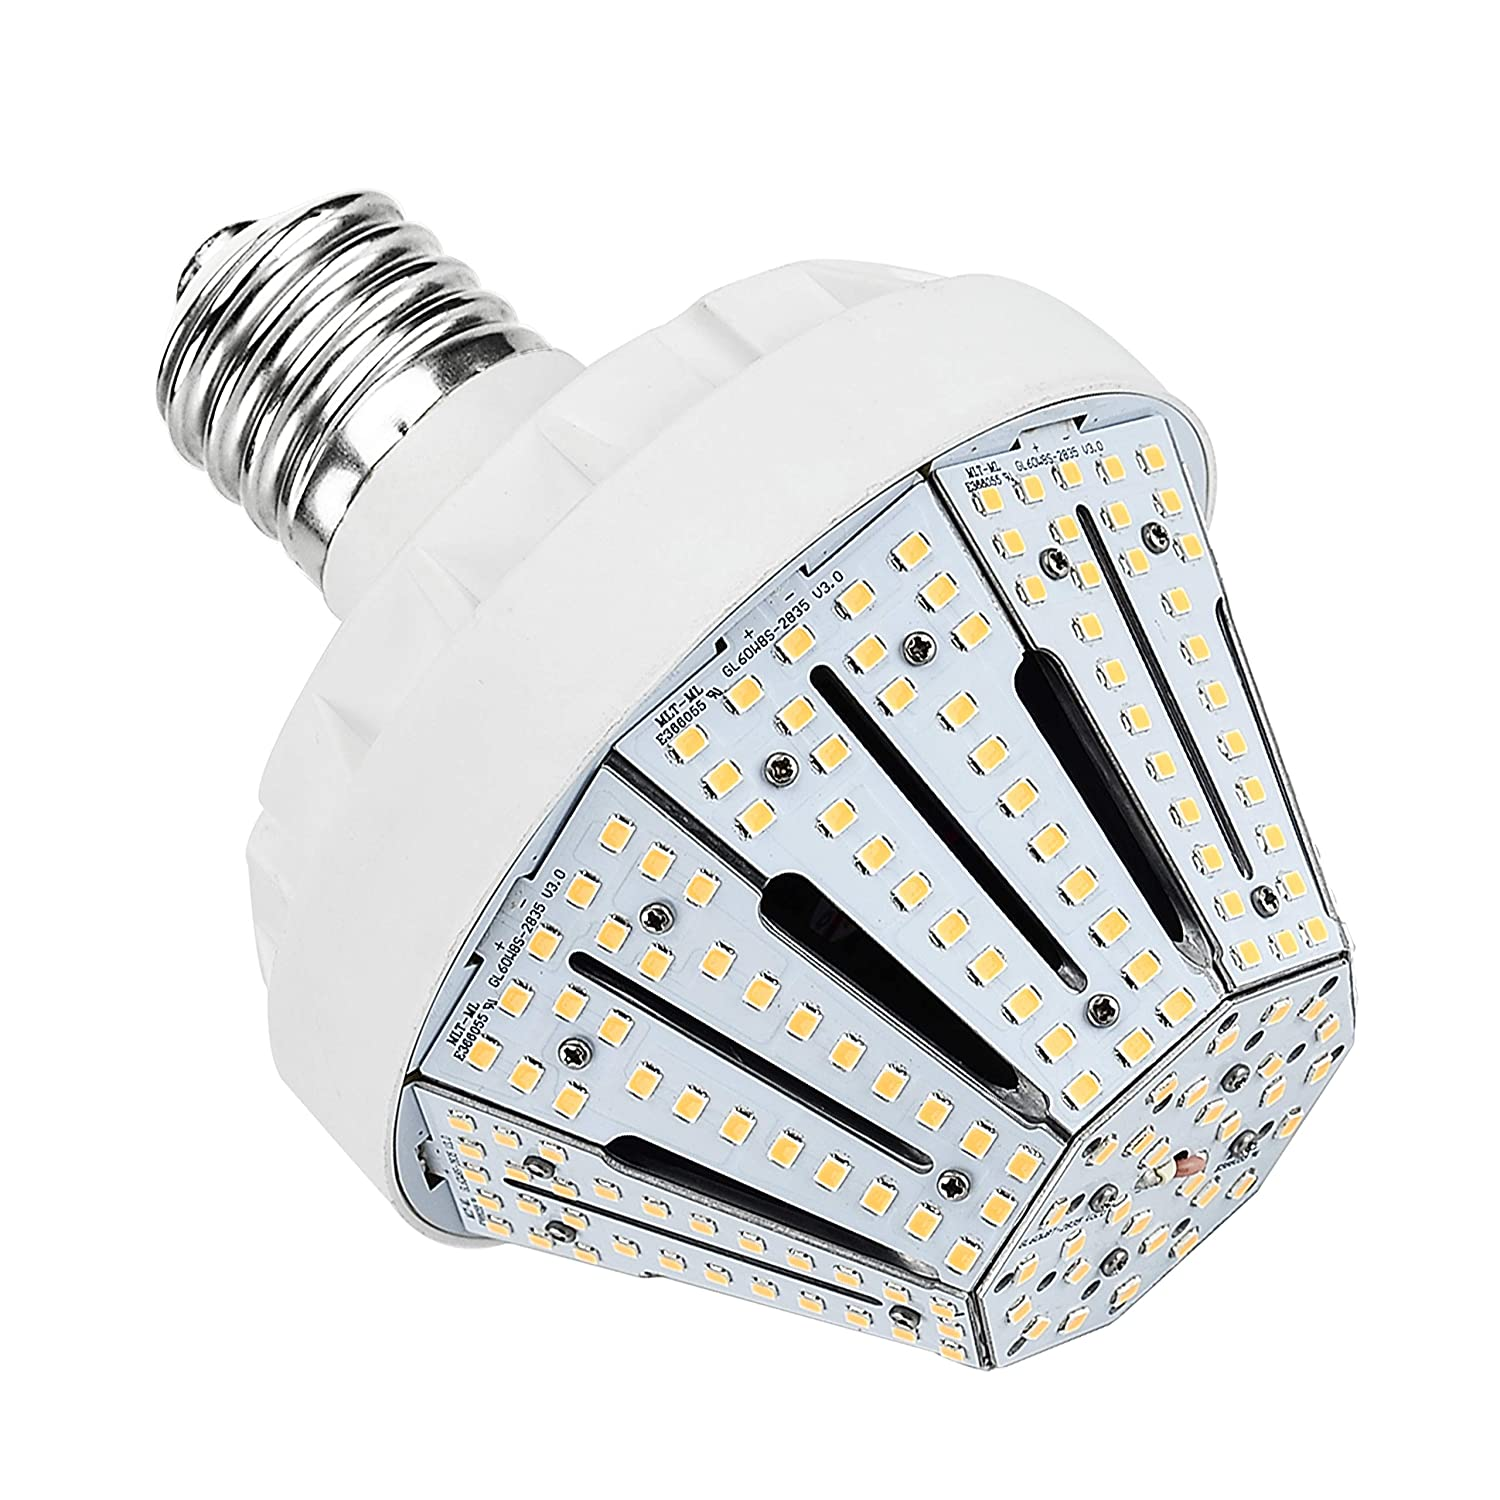 New Sunshine 60W LED Corn Light Bulb-E39 9150 Lumen 4000K Pure White Daylight UL&DLC Certified Replacement CFL/MH/HID/HPS,for Low Bay,Street Lamp,Post Lighting,Garage,Factory,Warehouse,Canopy Light